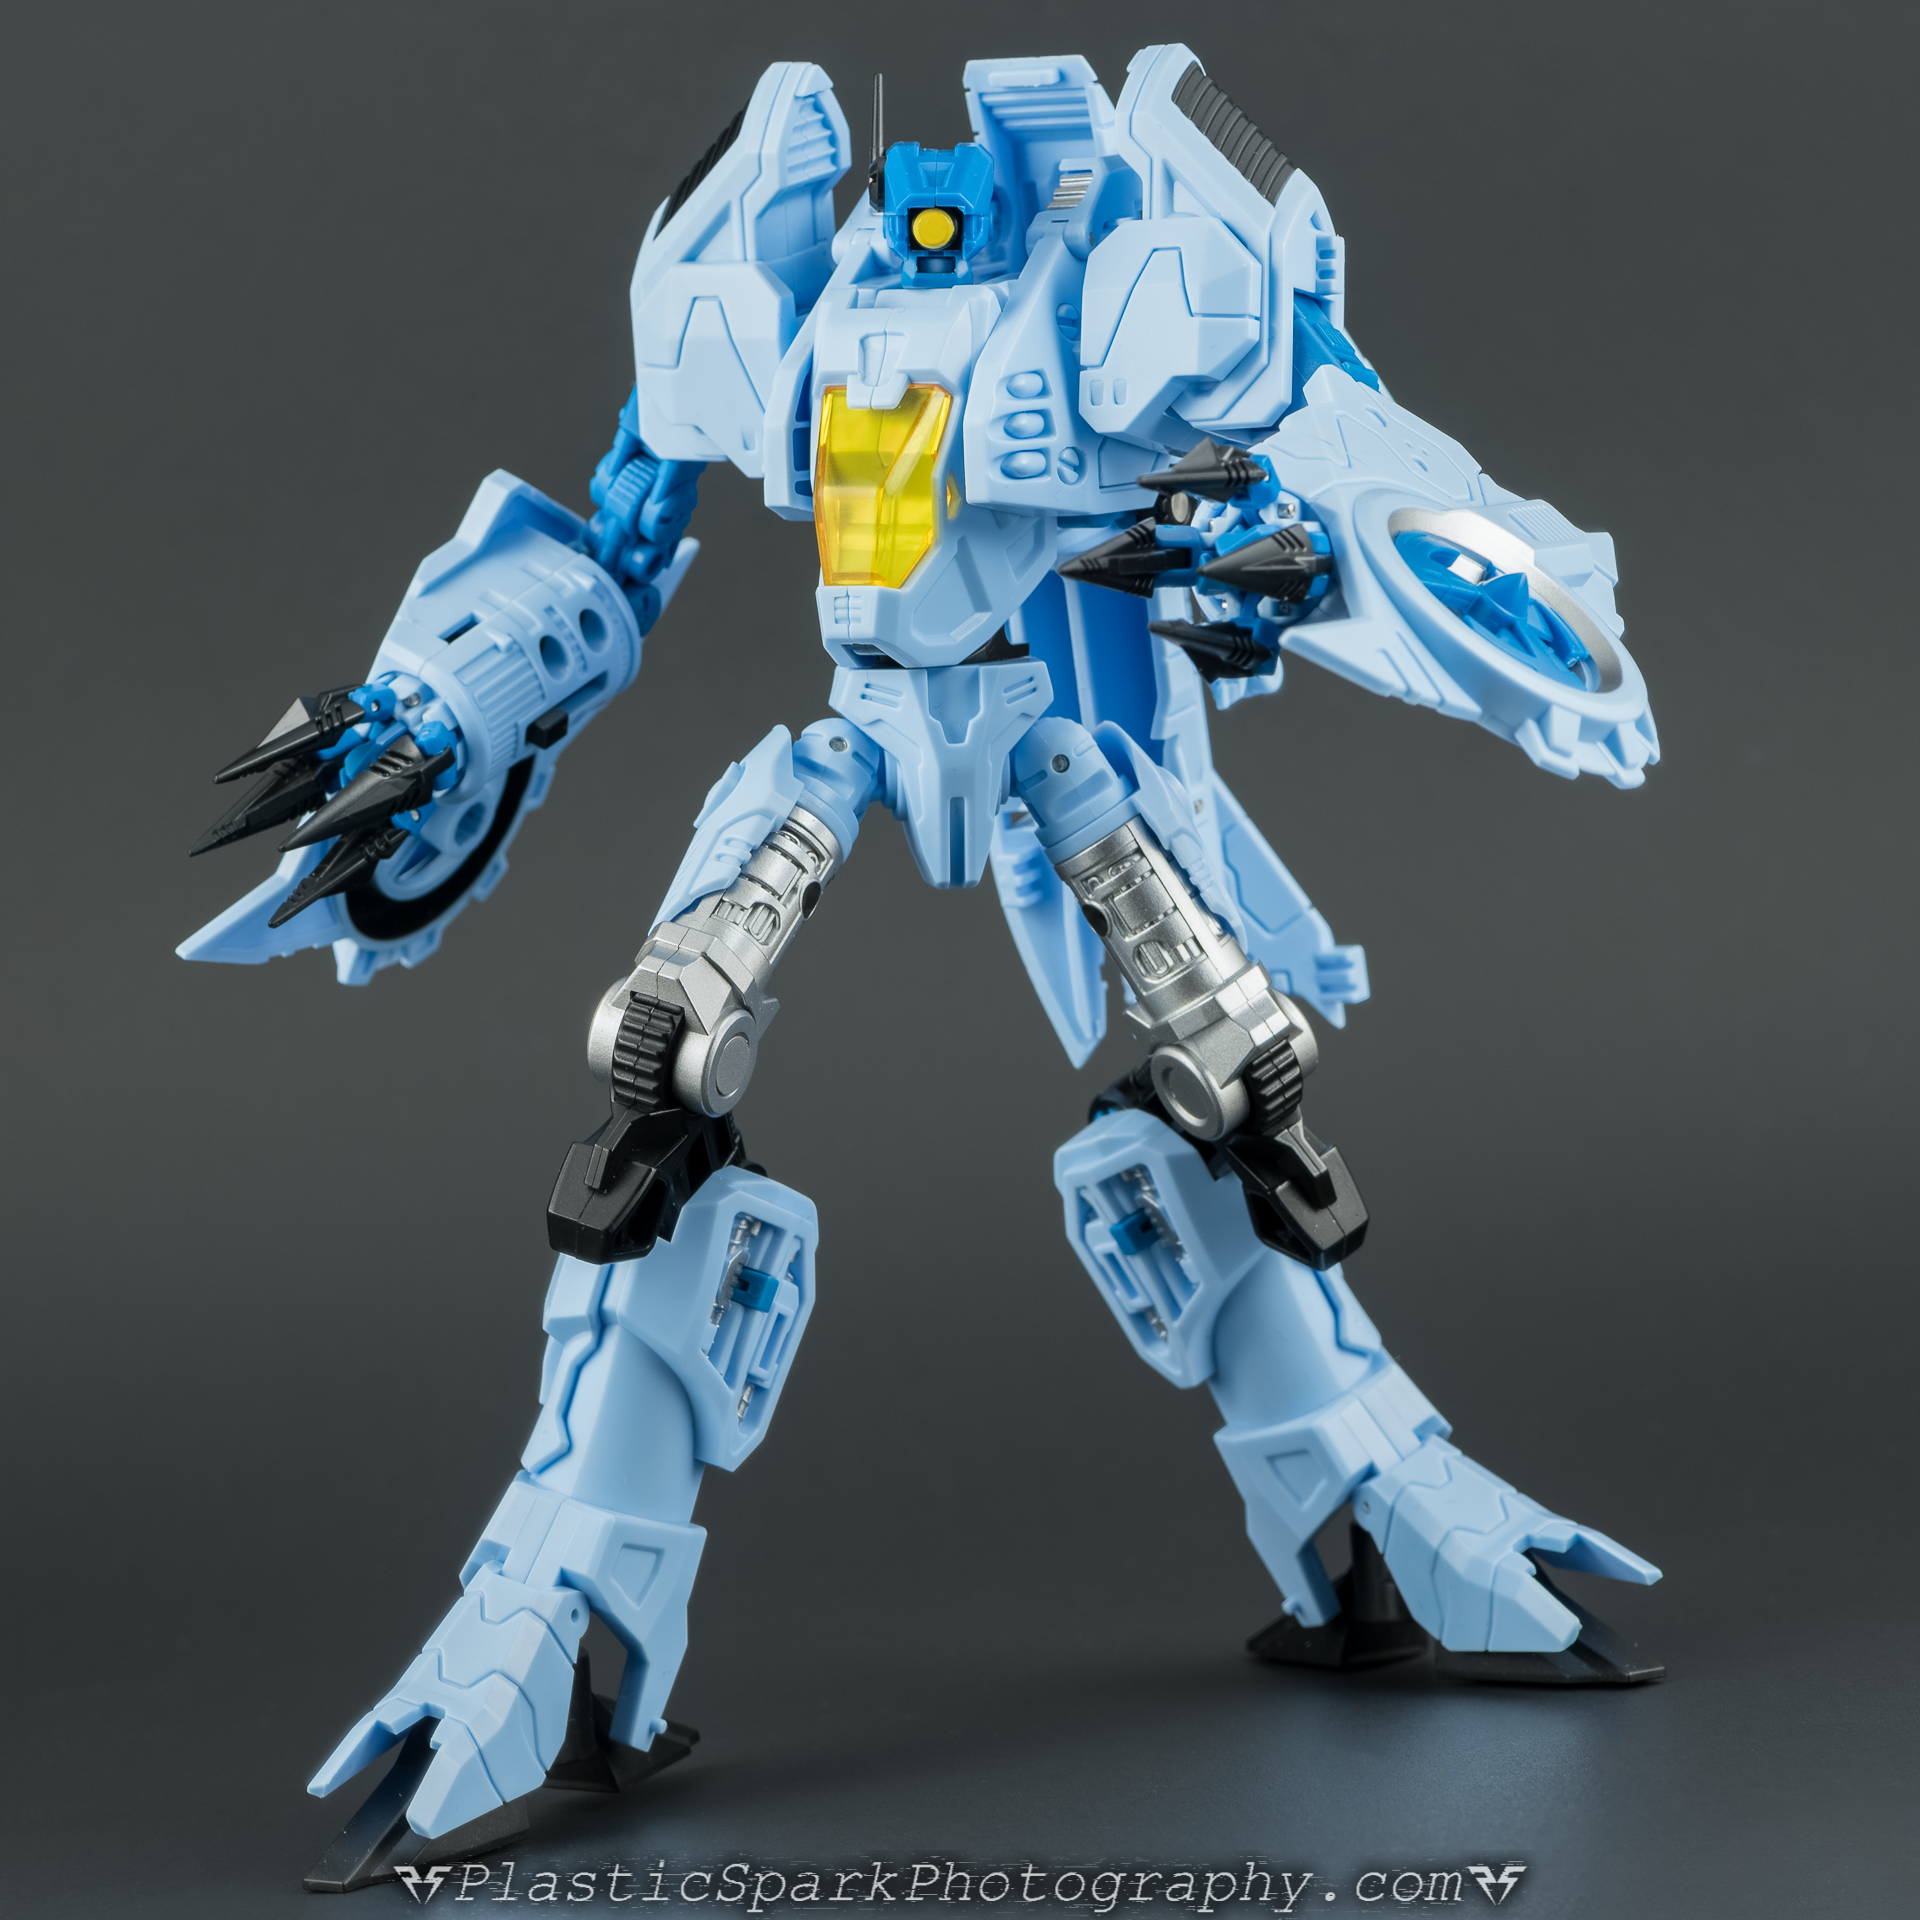 Mastermind-Creations-R-24-Turben-(19-of-34).png